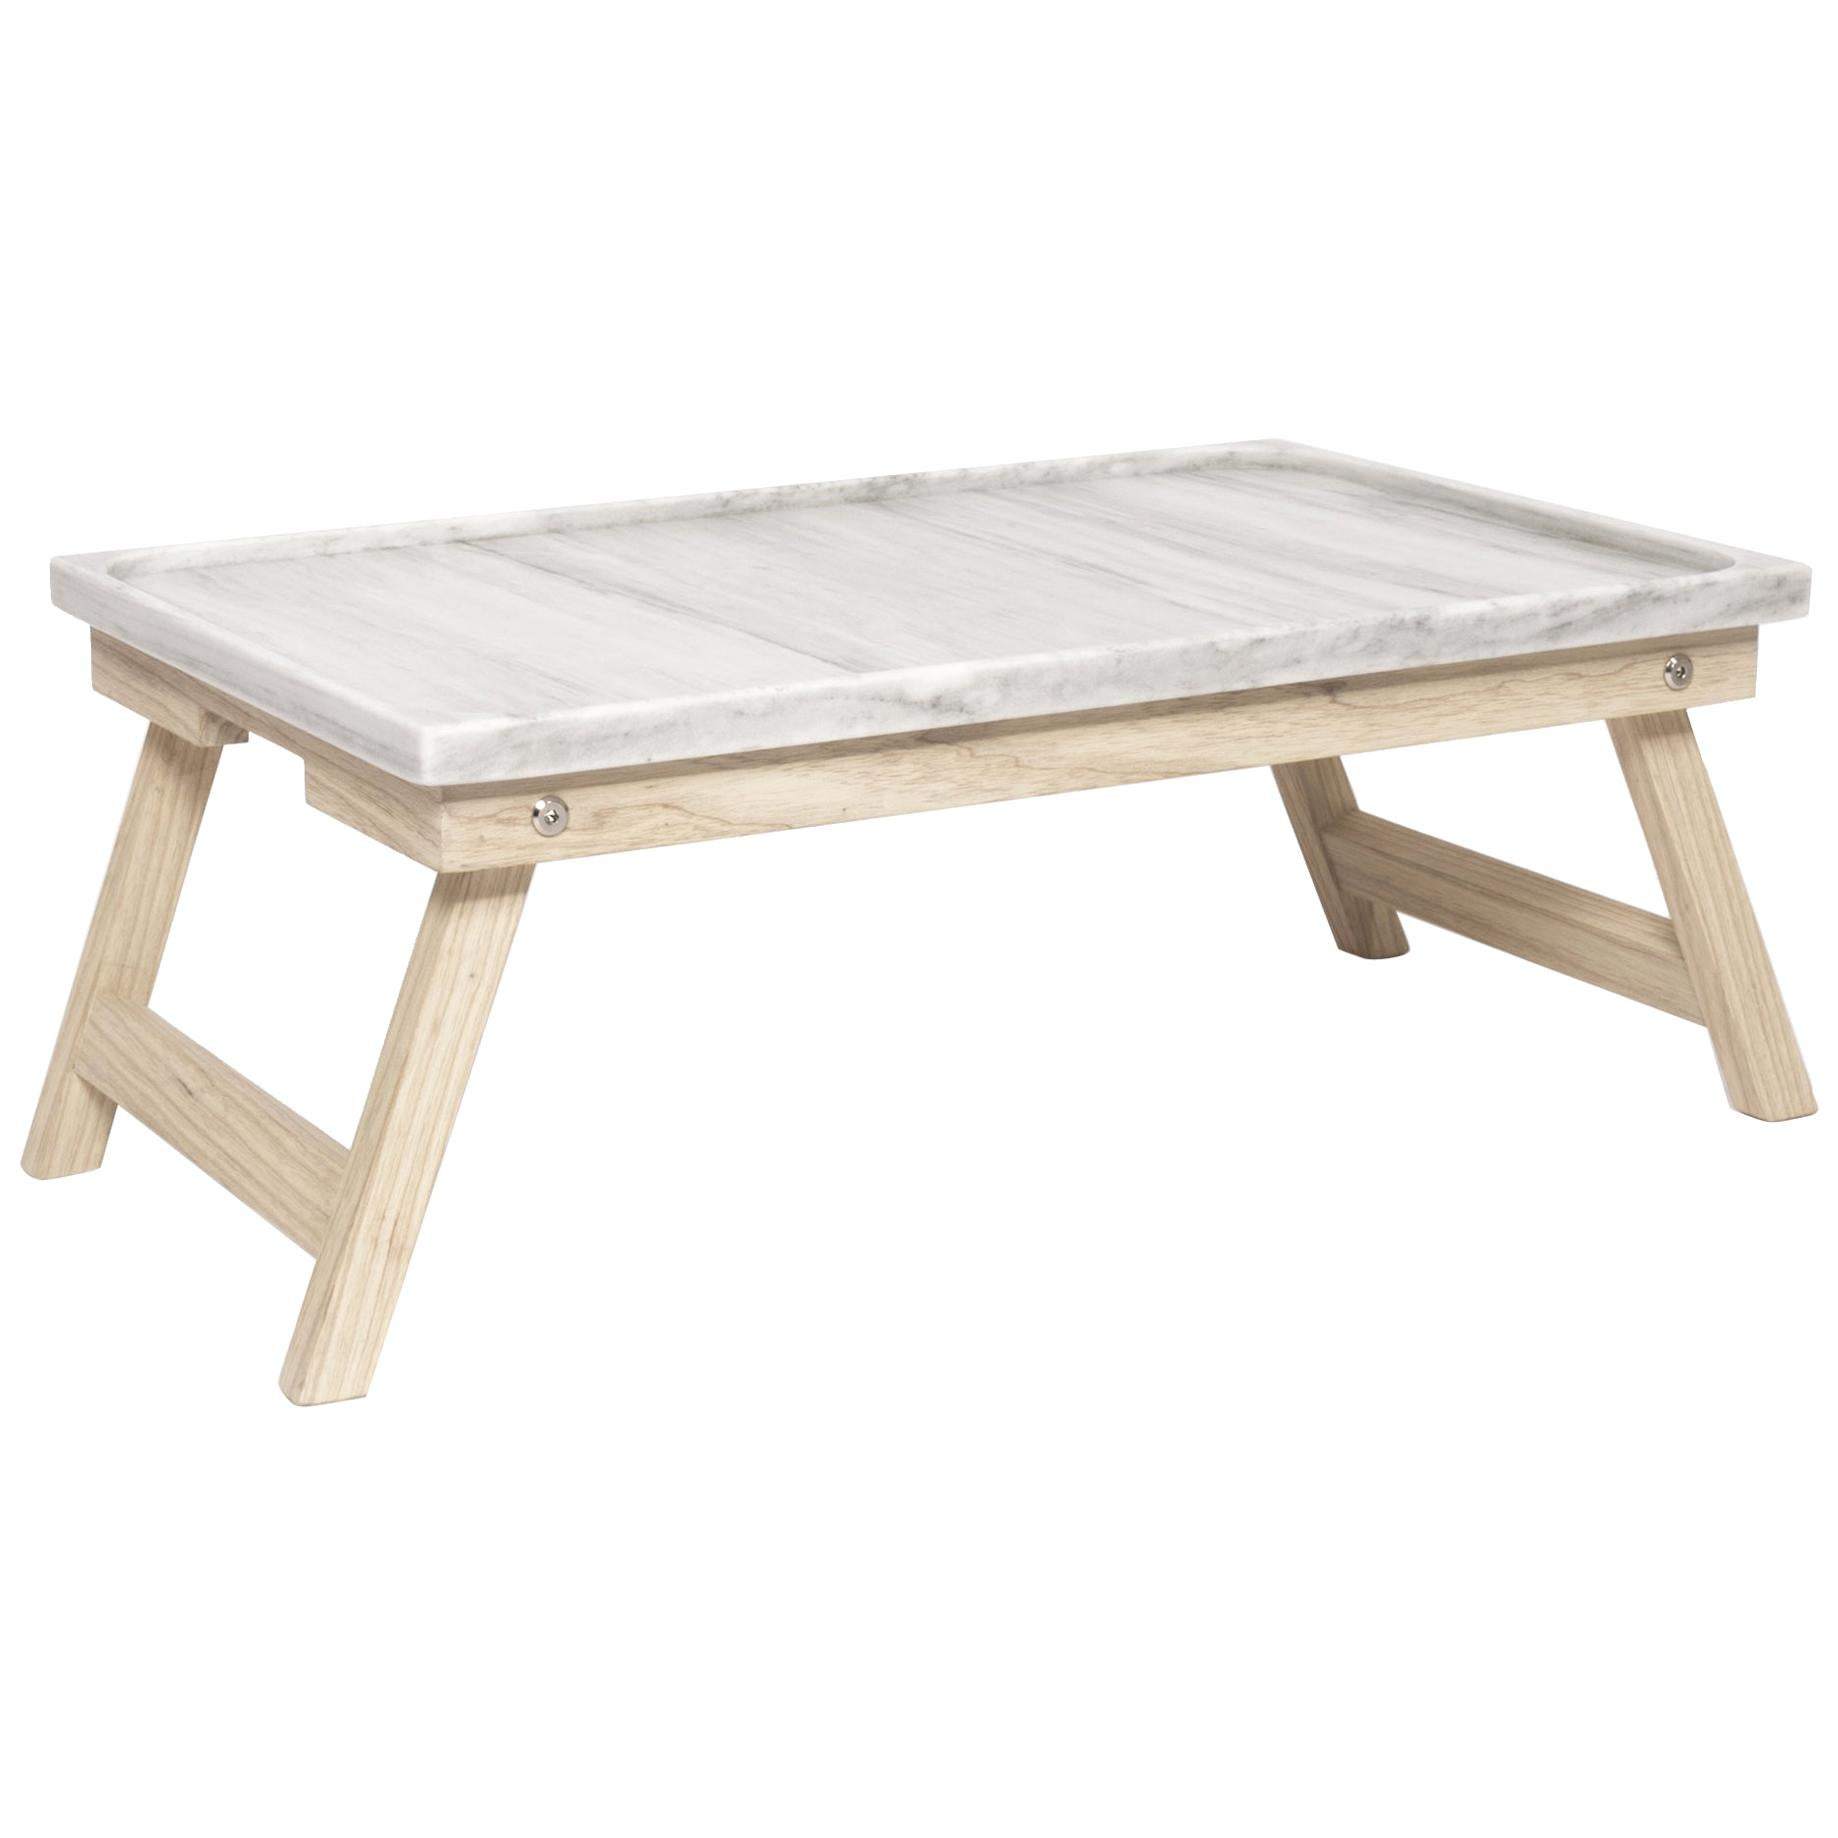 Marble ash wood and marble Bed Tray